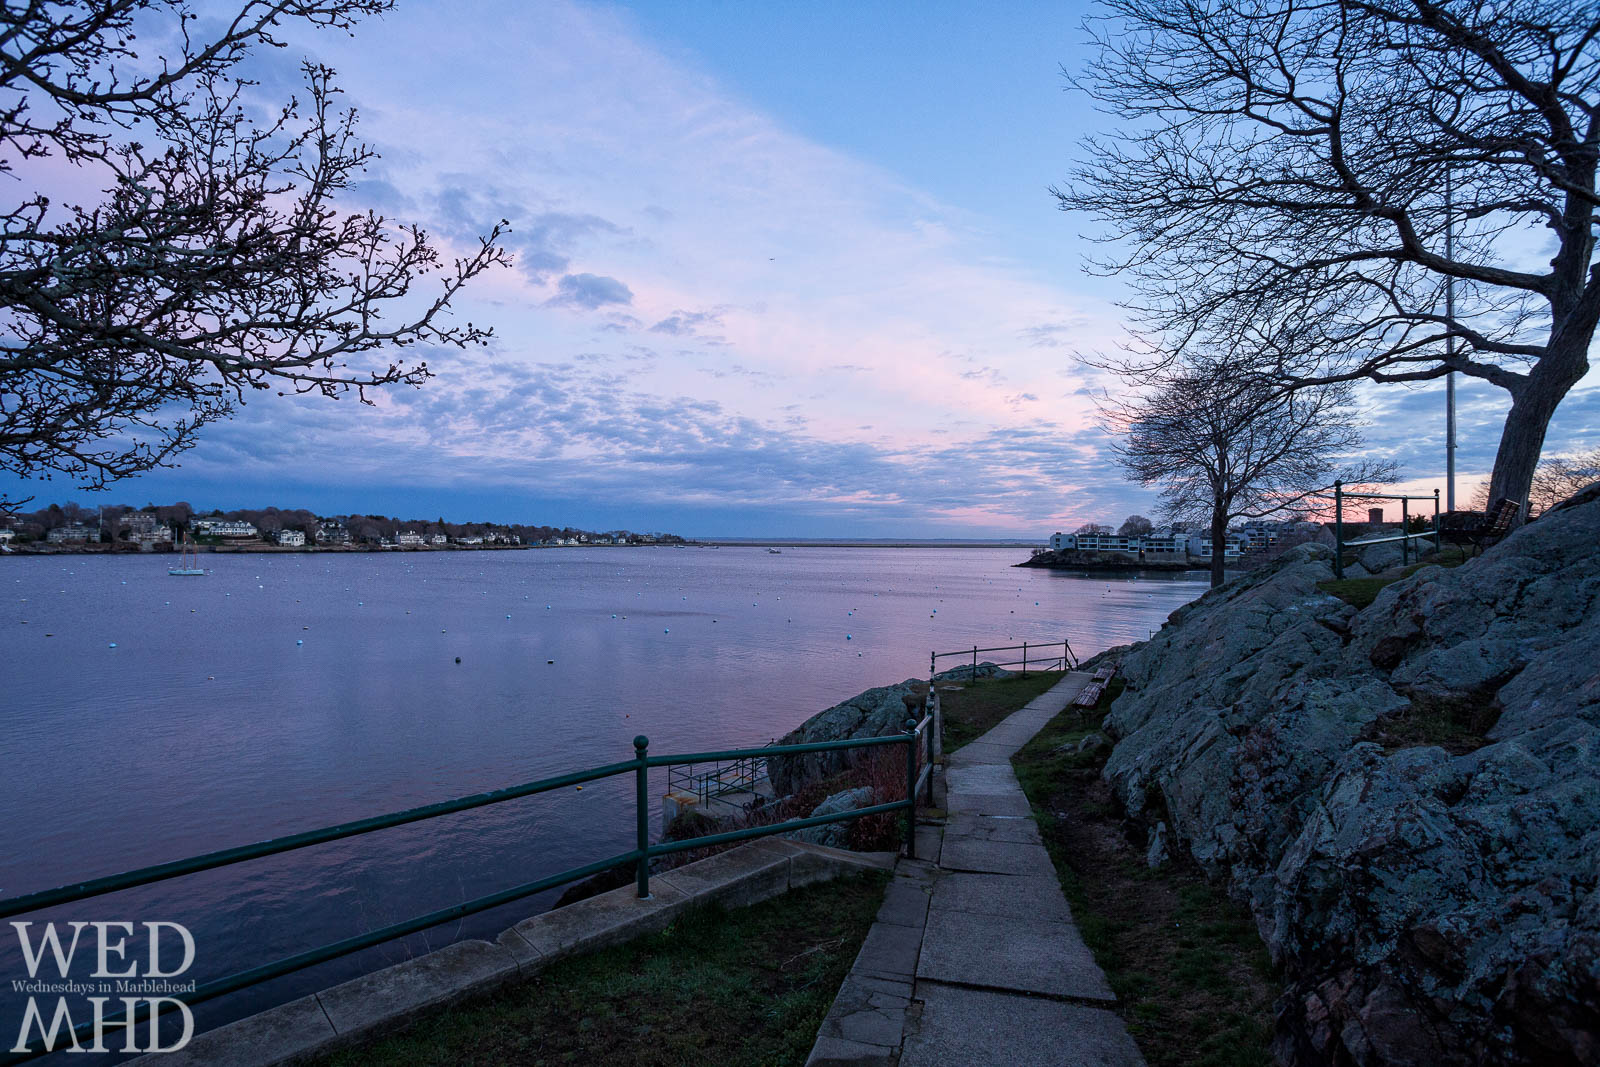 Budding trees line the path at Crocker Park leading toward the harbor under purple skies